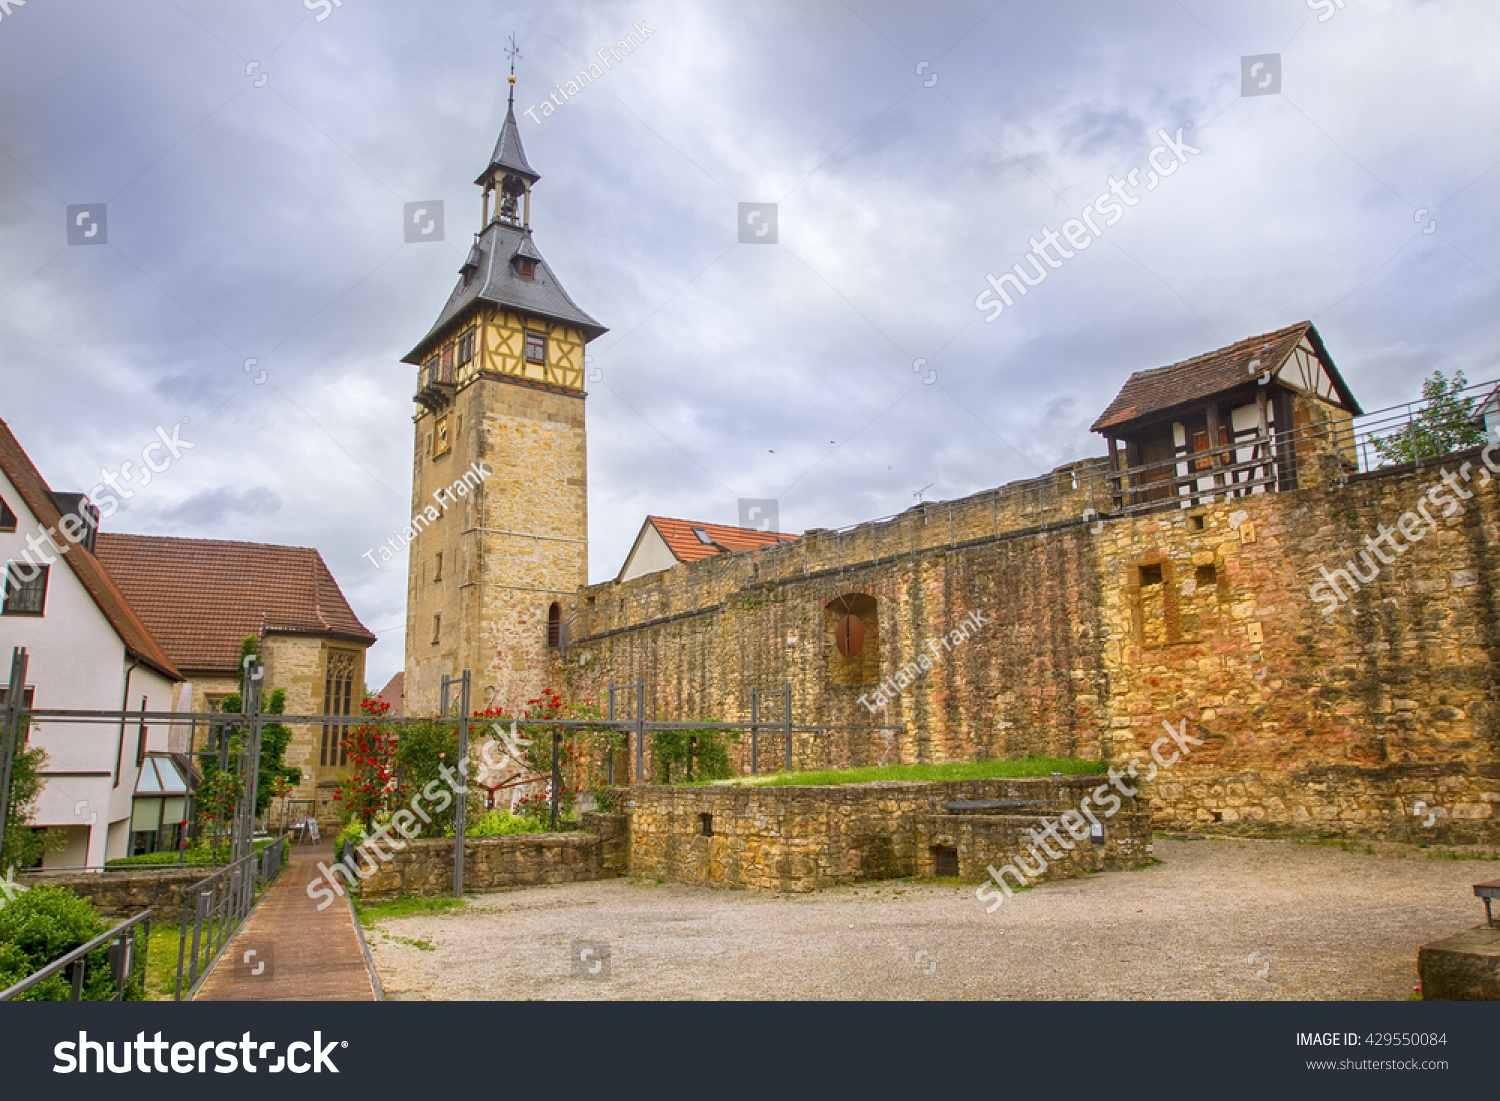 Medieval Tower Marbach Germany Stock Photo (Royalty Free) 429550084 ...